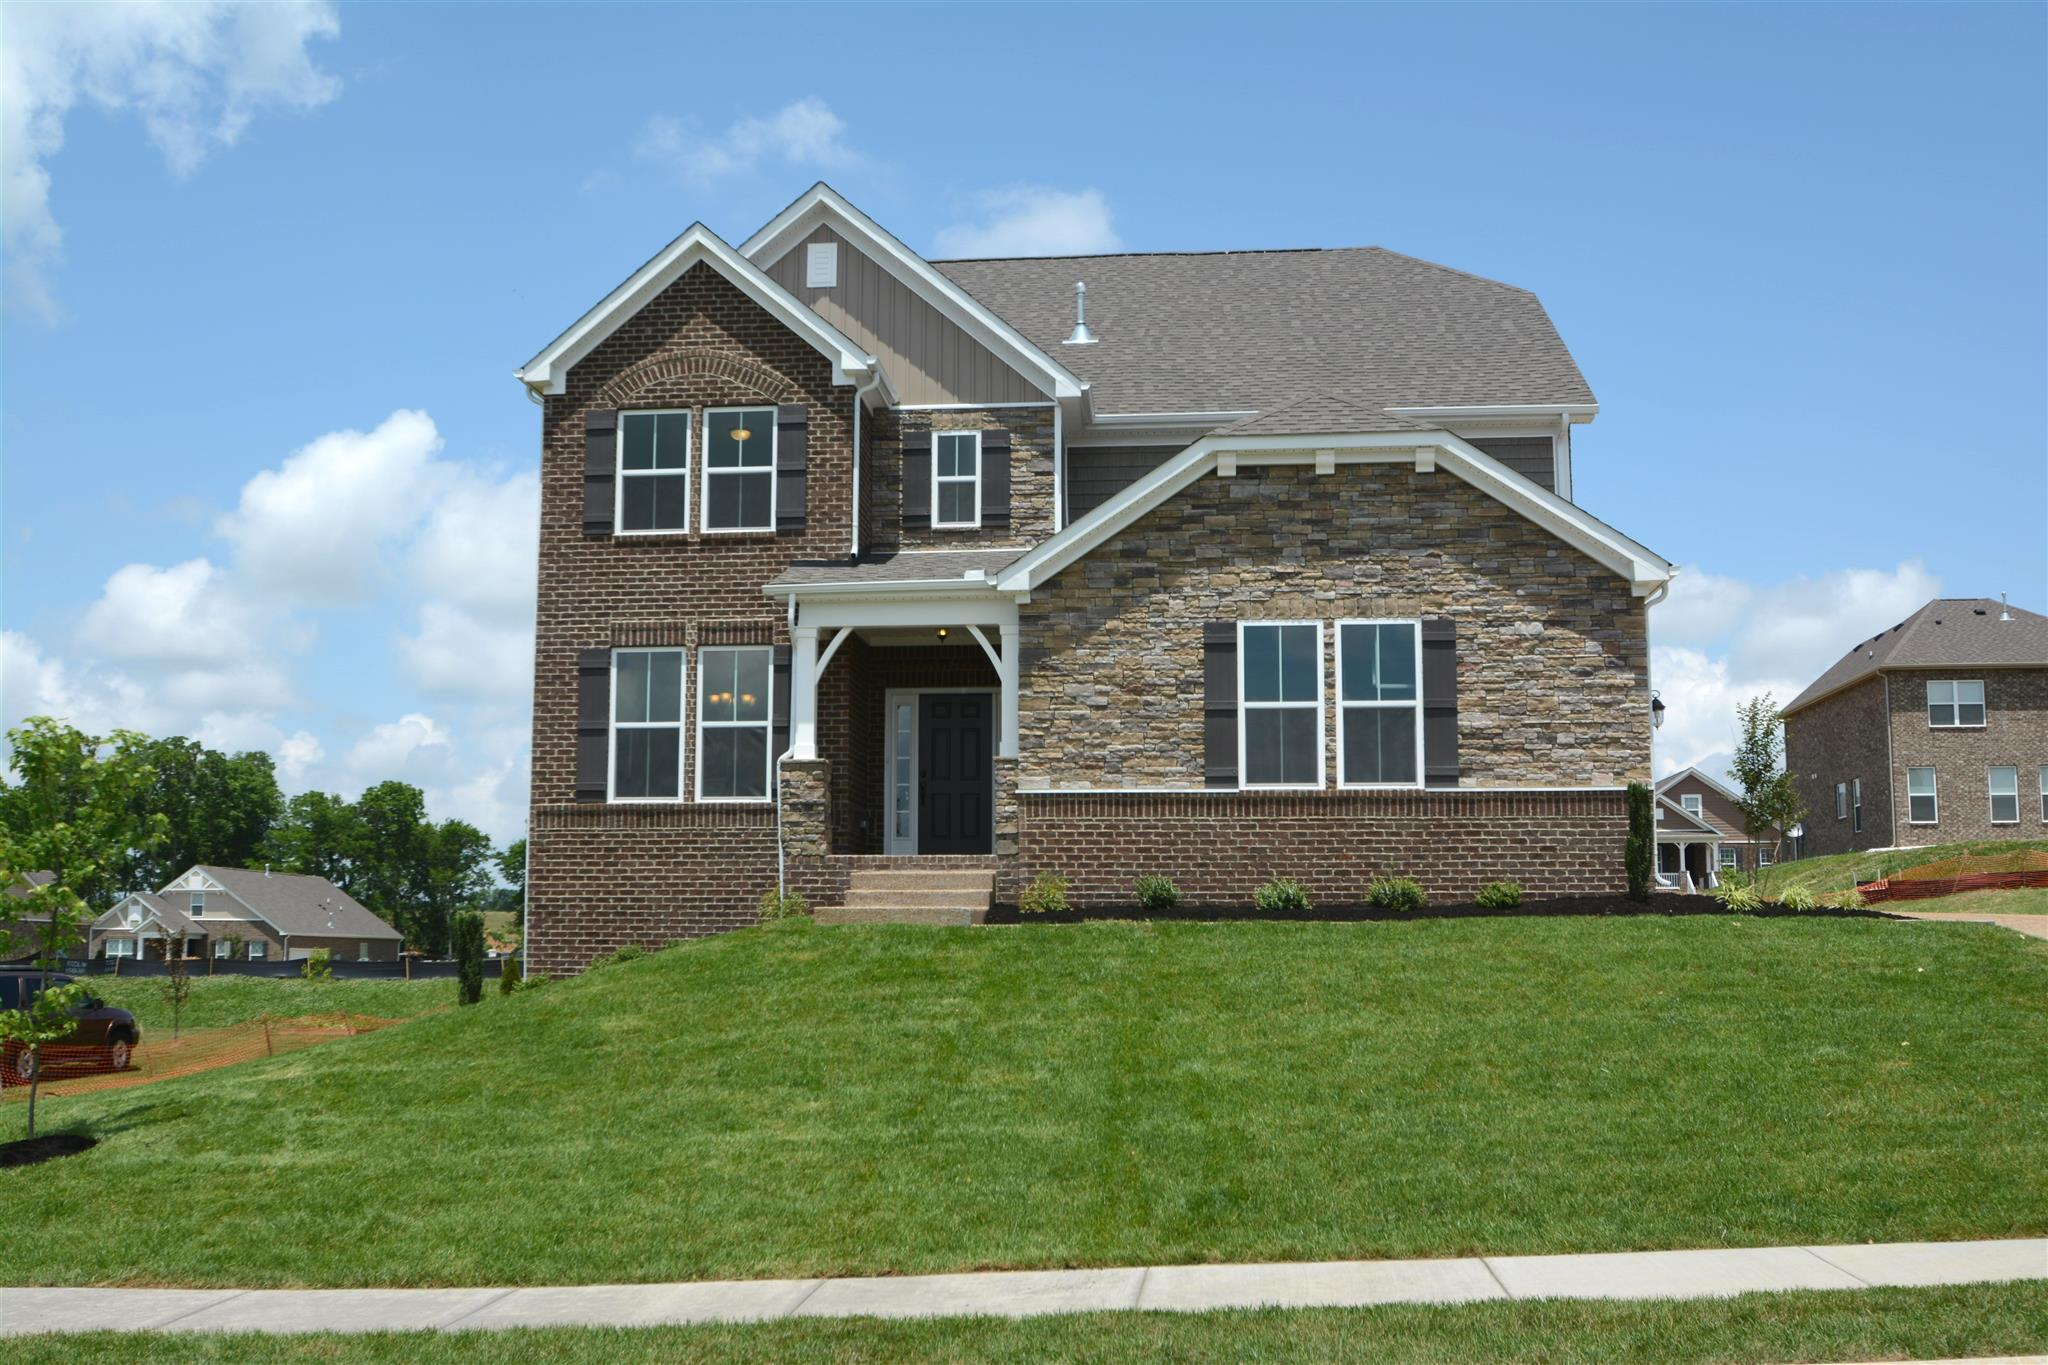 Nolenmeade Subdivision Homes For Sale